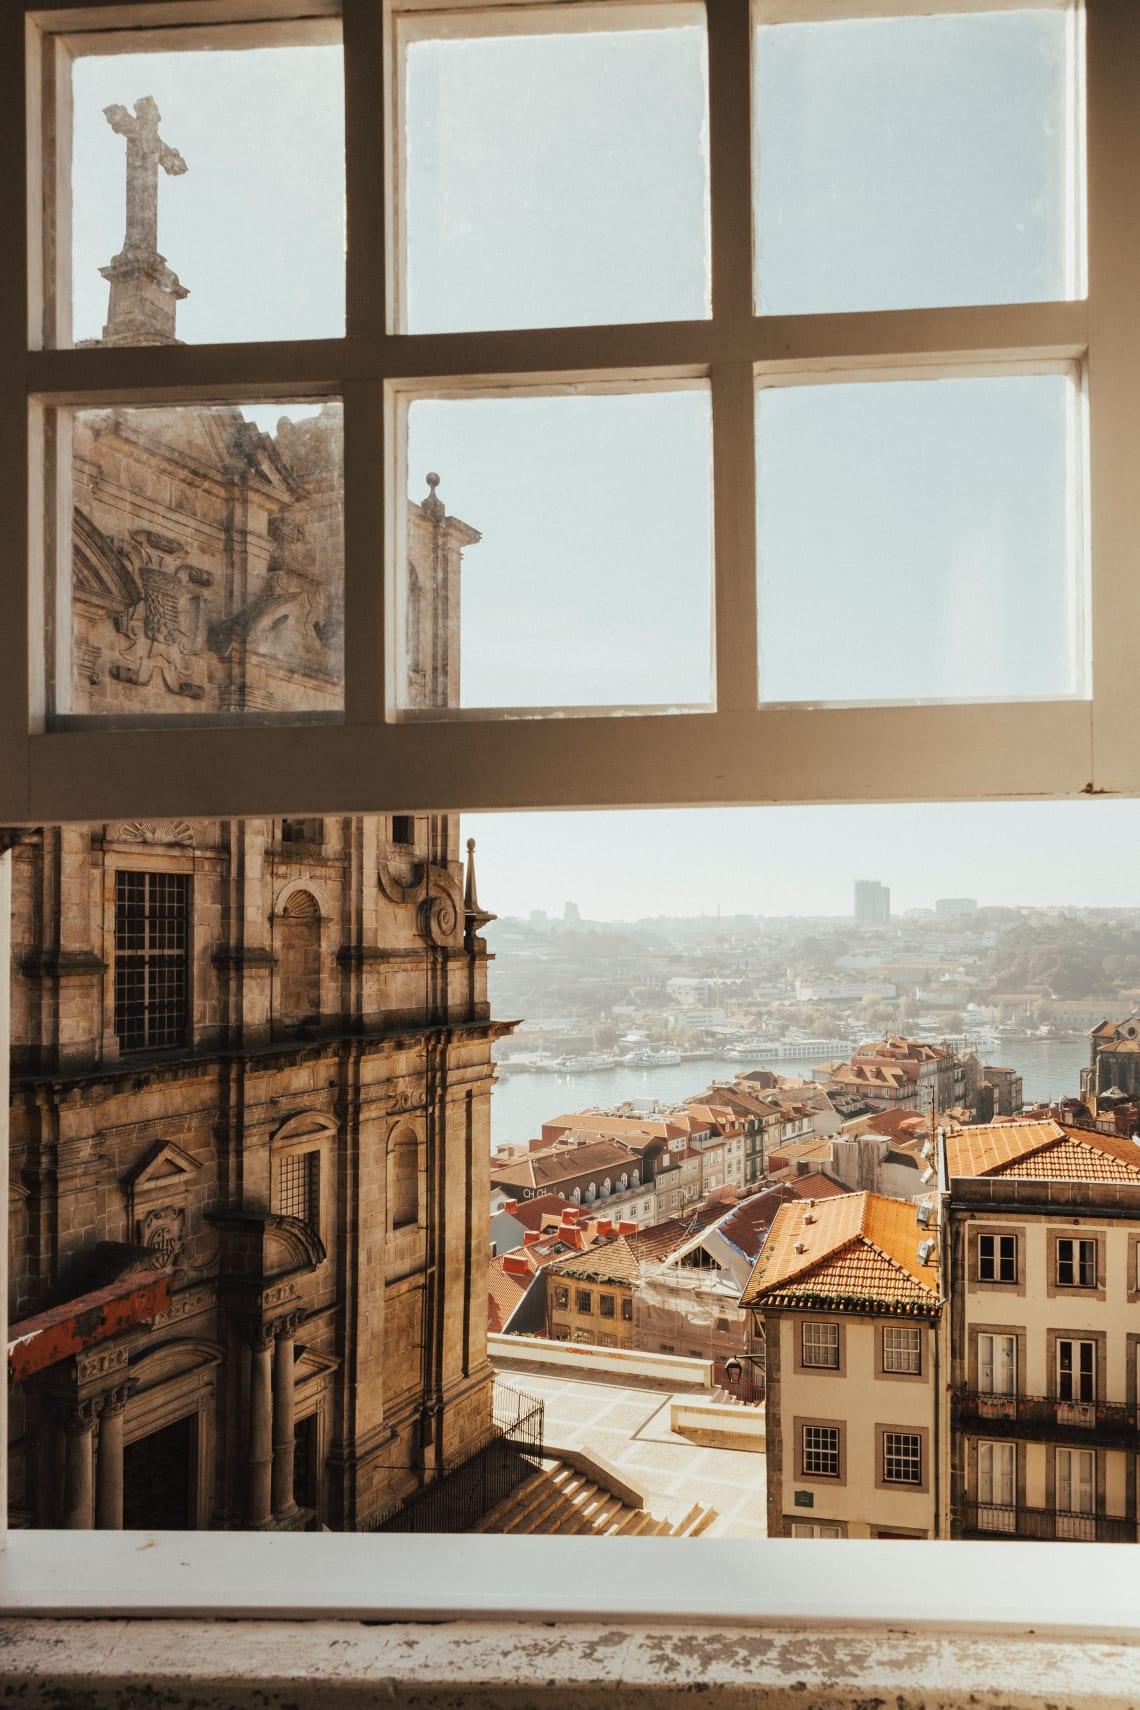 Inspirational places to visit: Porto, Portugal